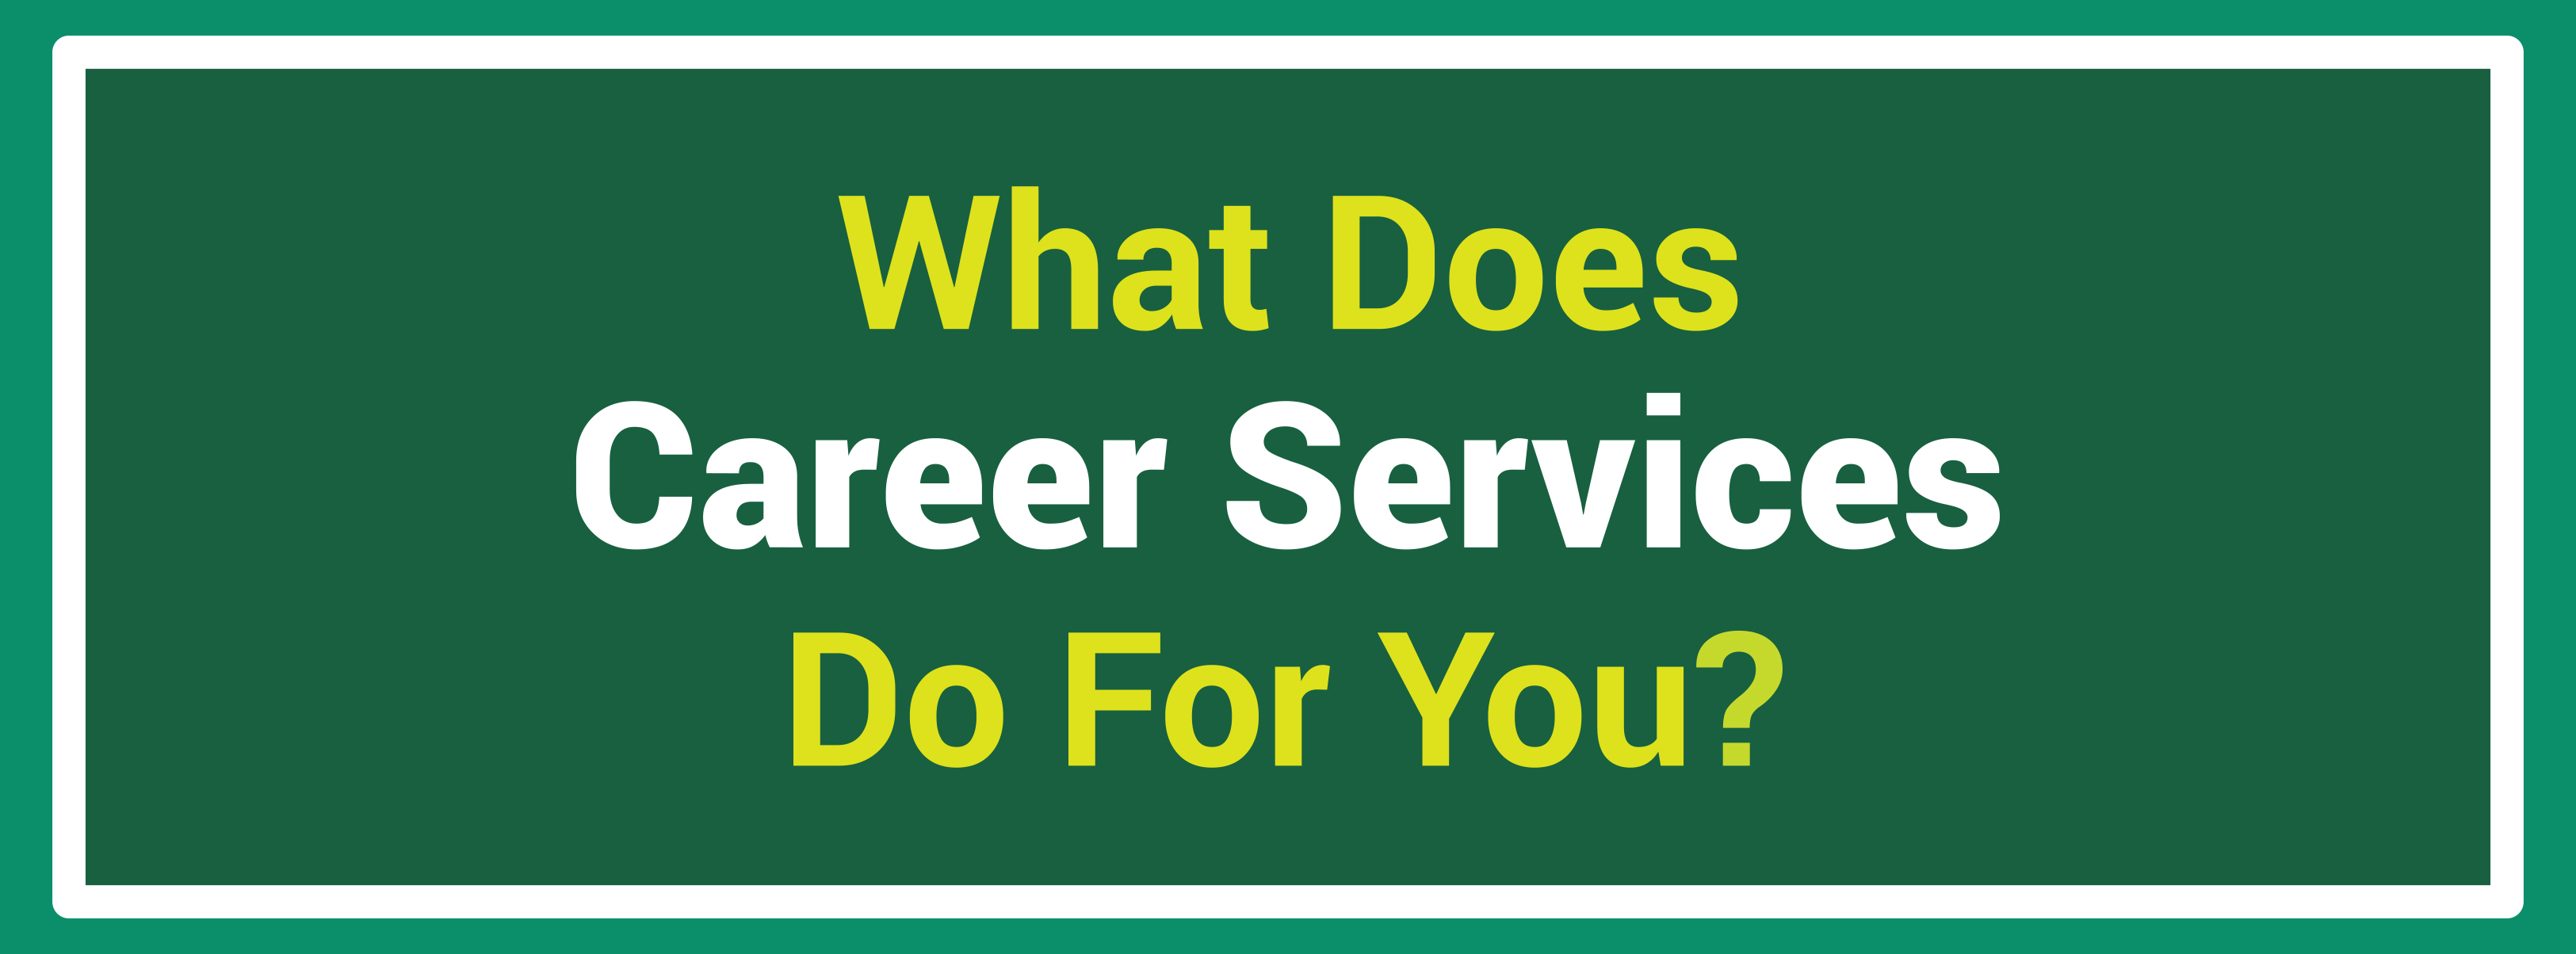 Career Services Options